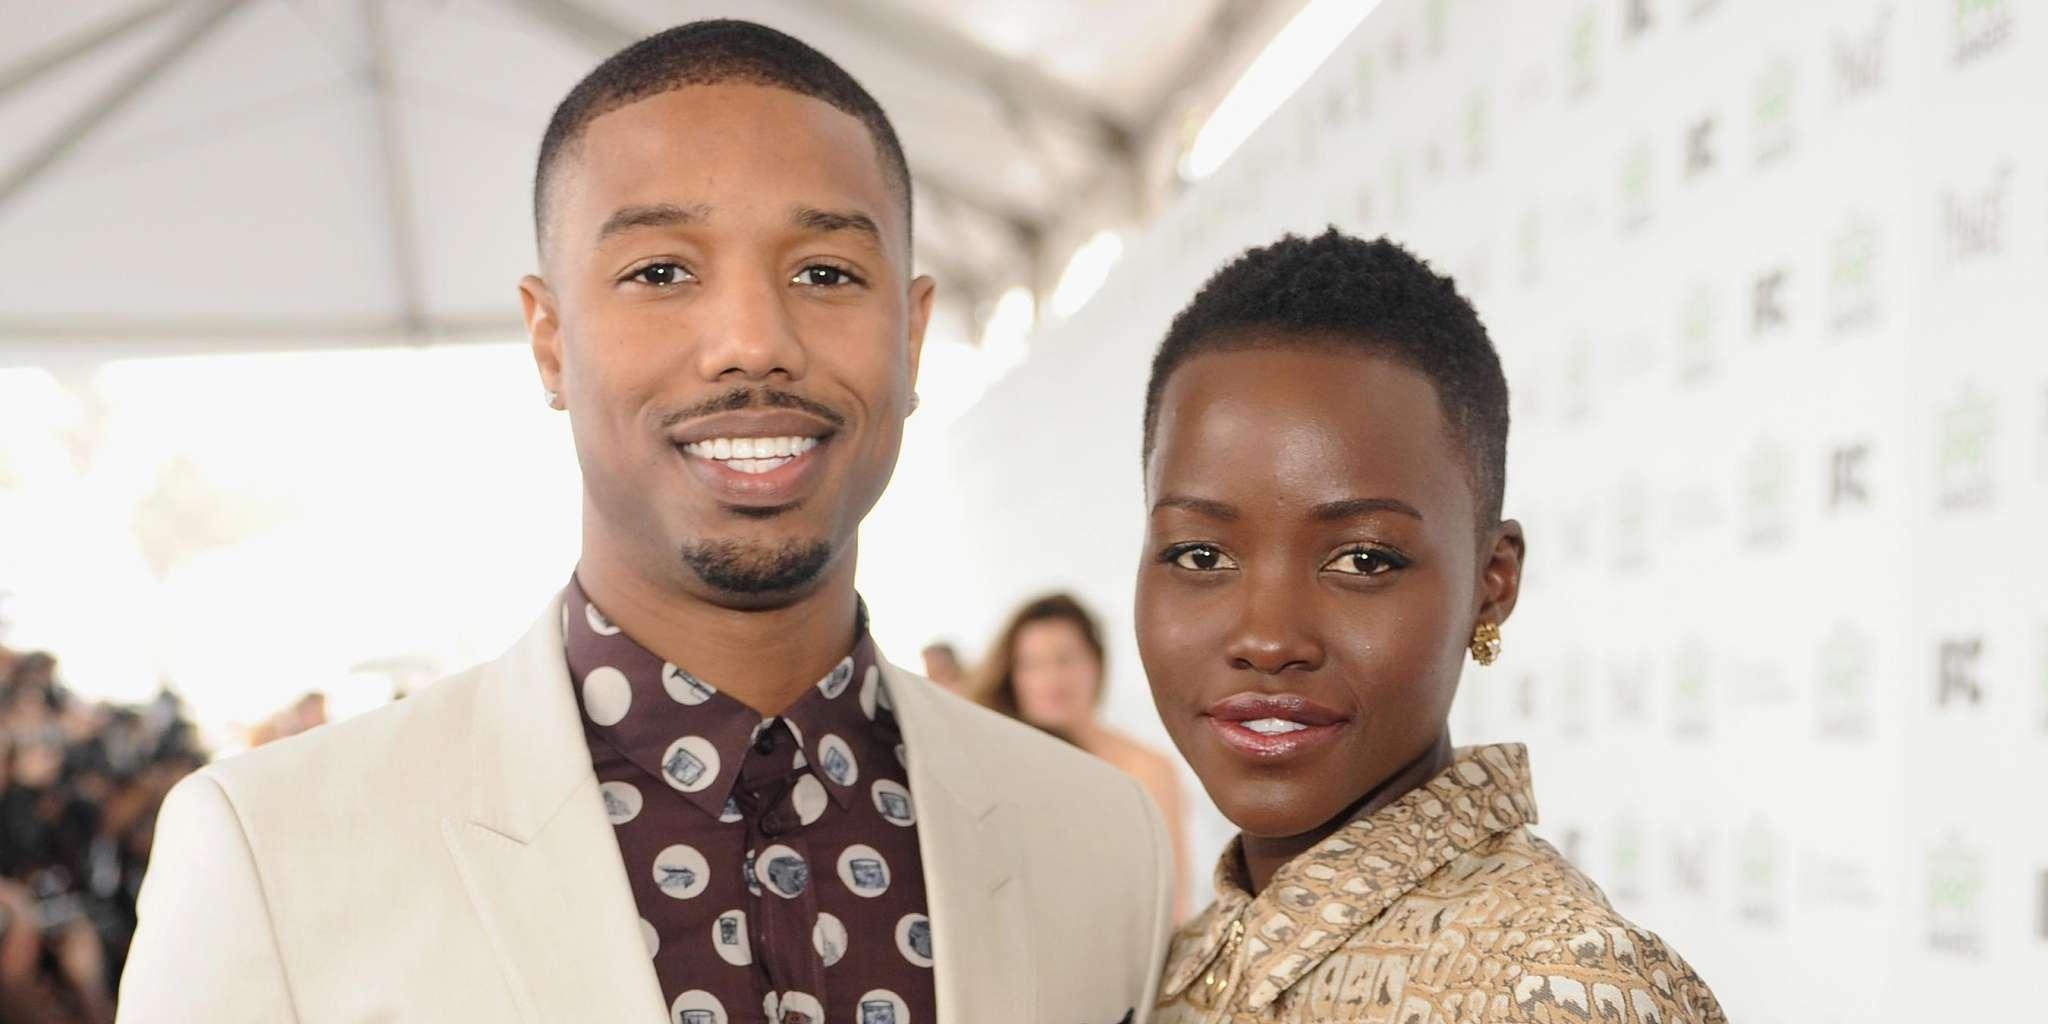 Michael B. Jordan And Lupita Nyong'o - What Are The Chances The 'Black Panther' Stars Will Date Amid FlirtyInteractions?